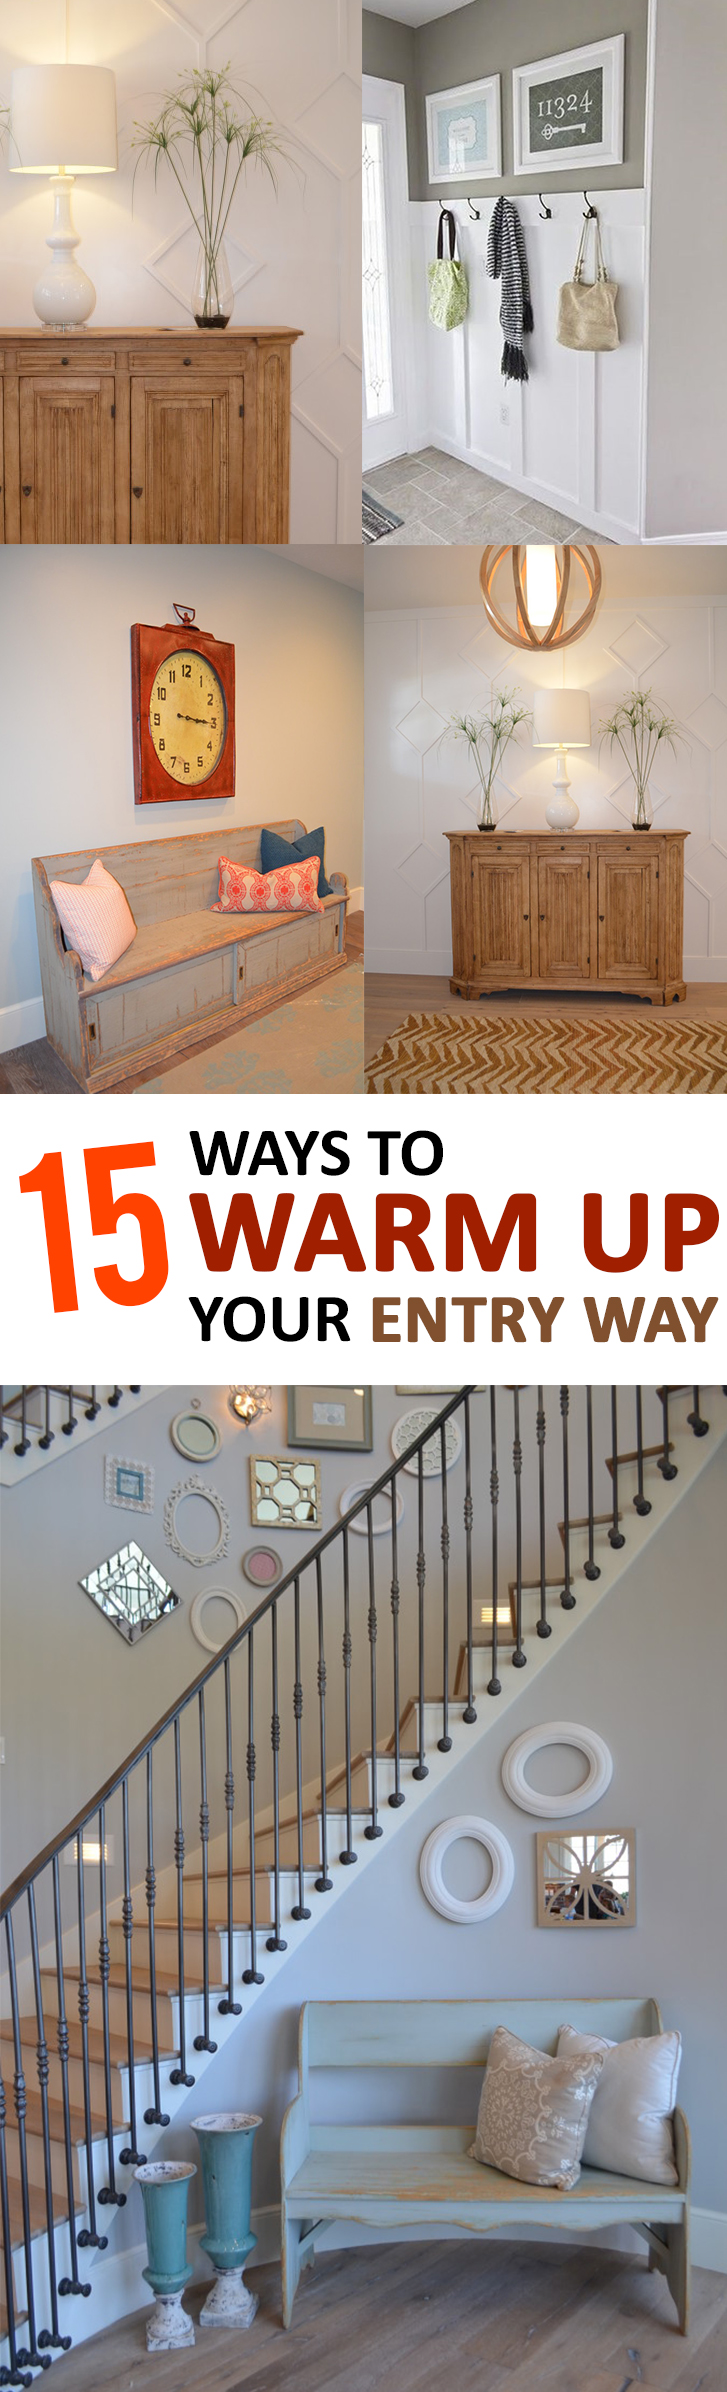 15 Ways to Warm up Your Entry Way